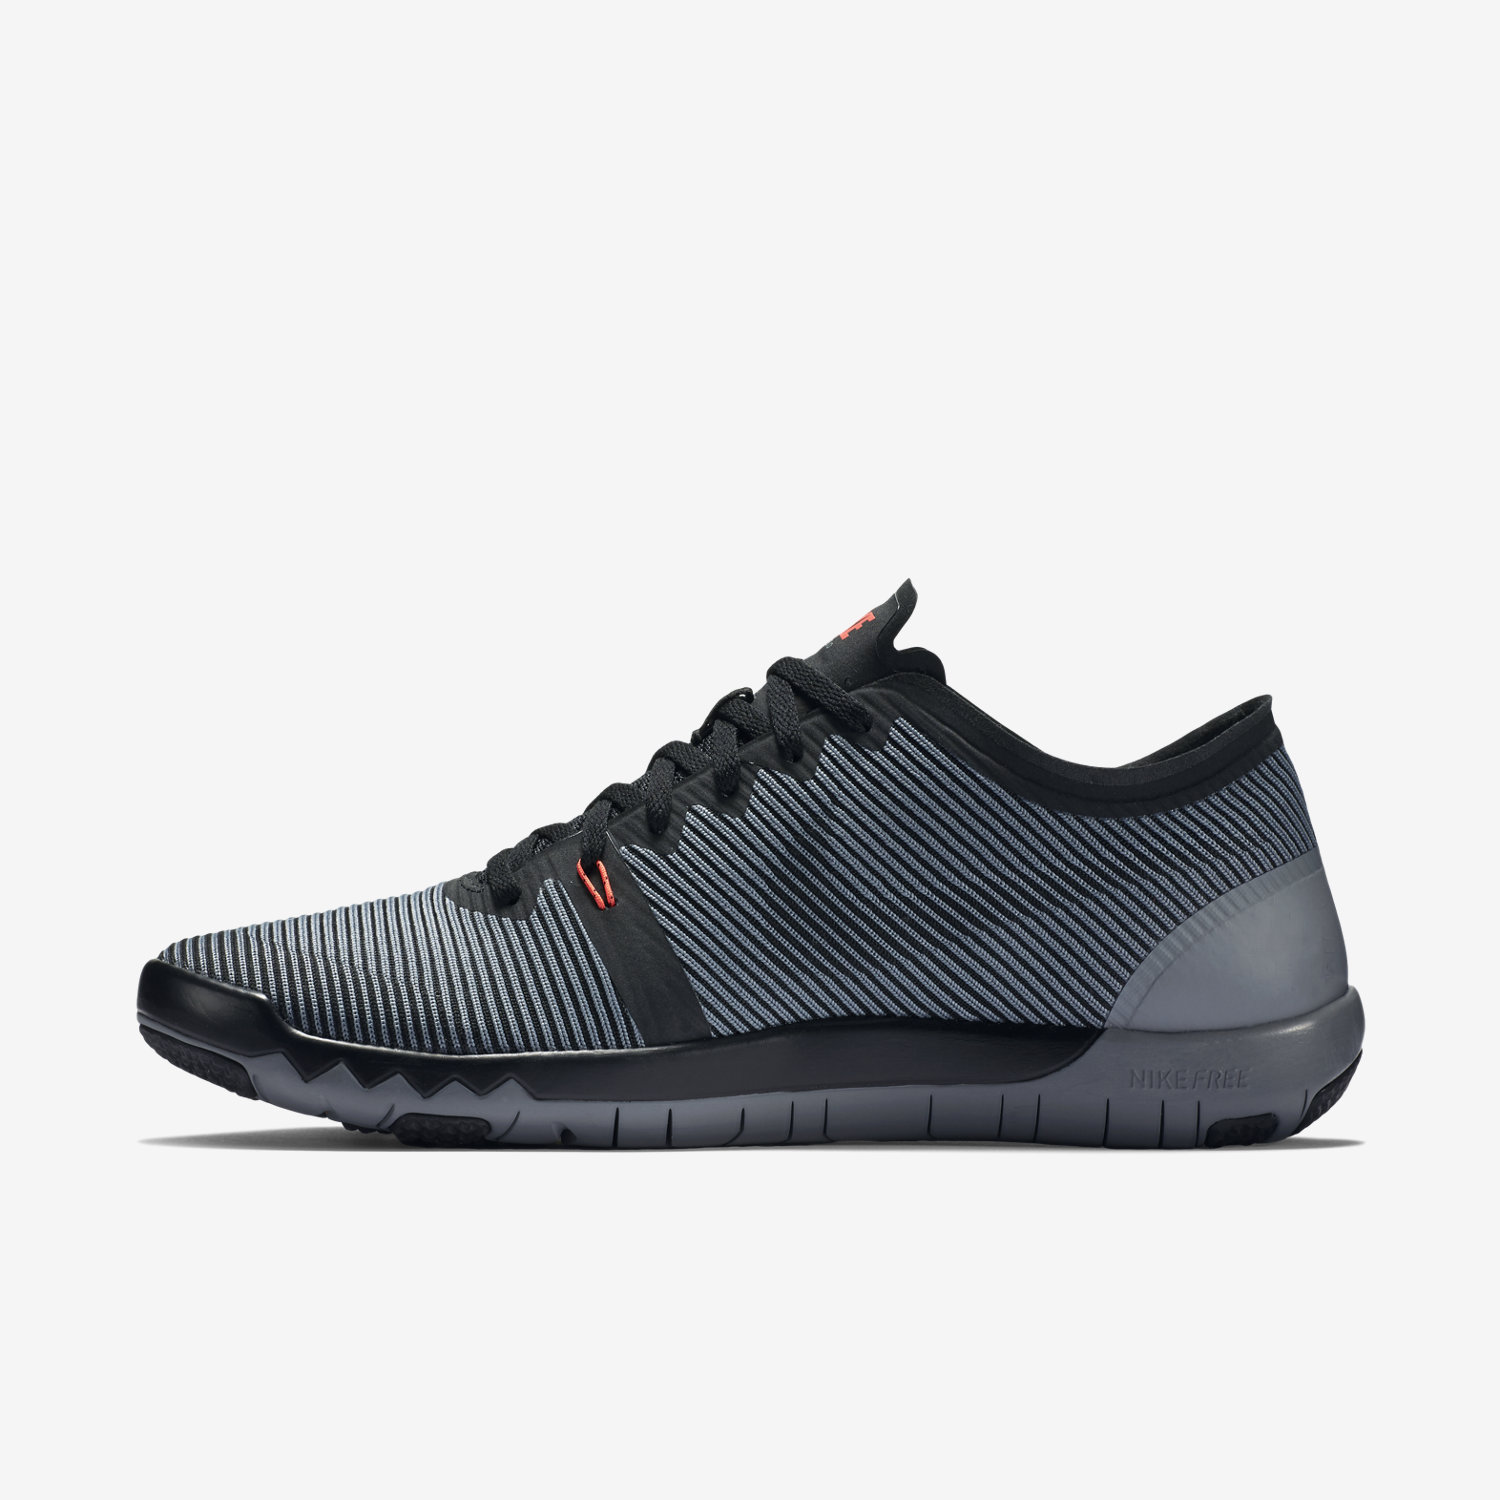 Nike Free 5.0 V2 All Black Nikes Running shoes, Nike